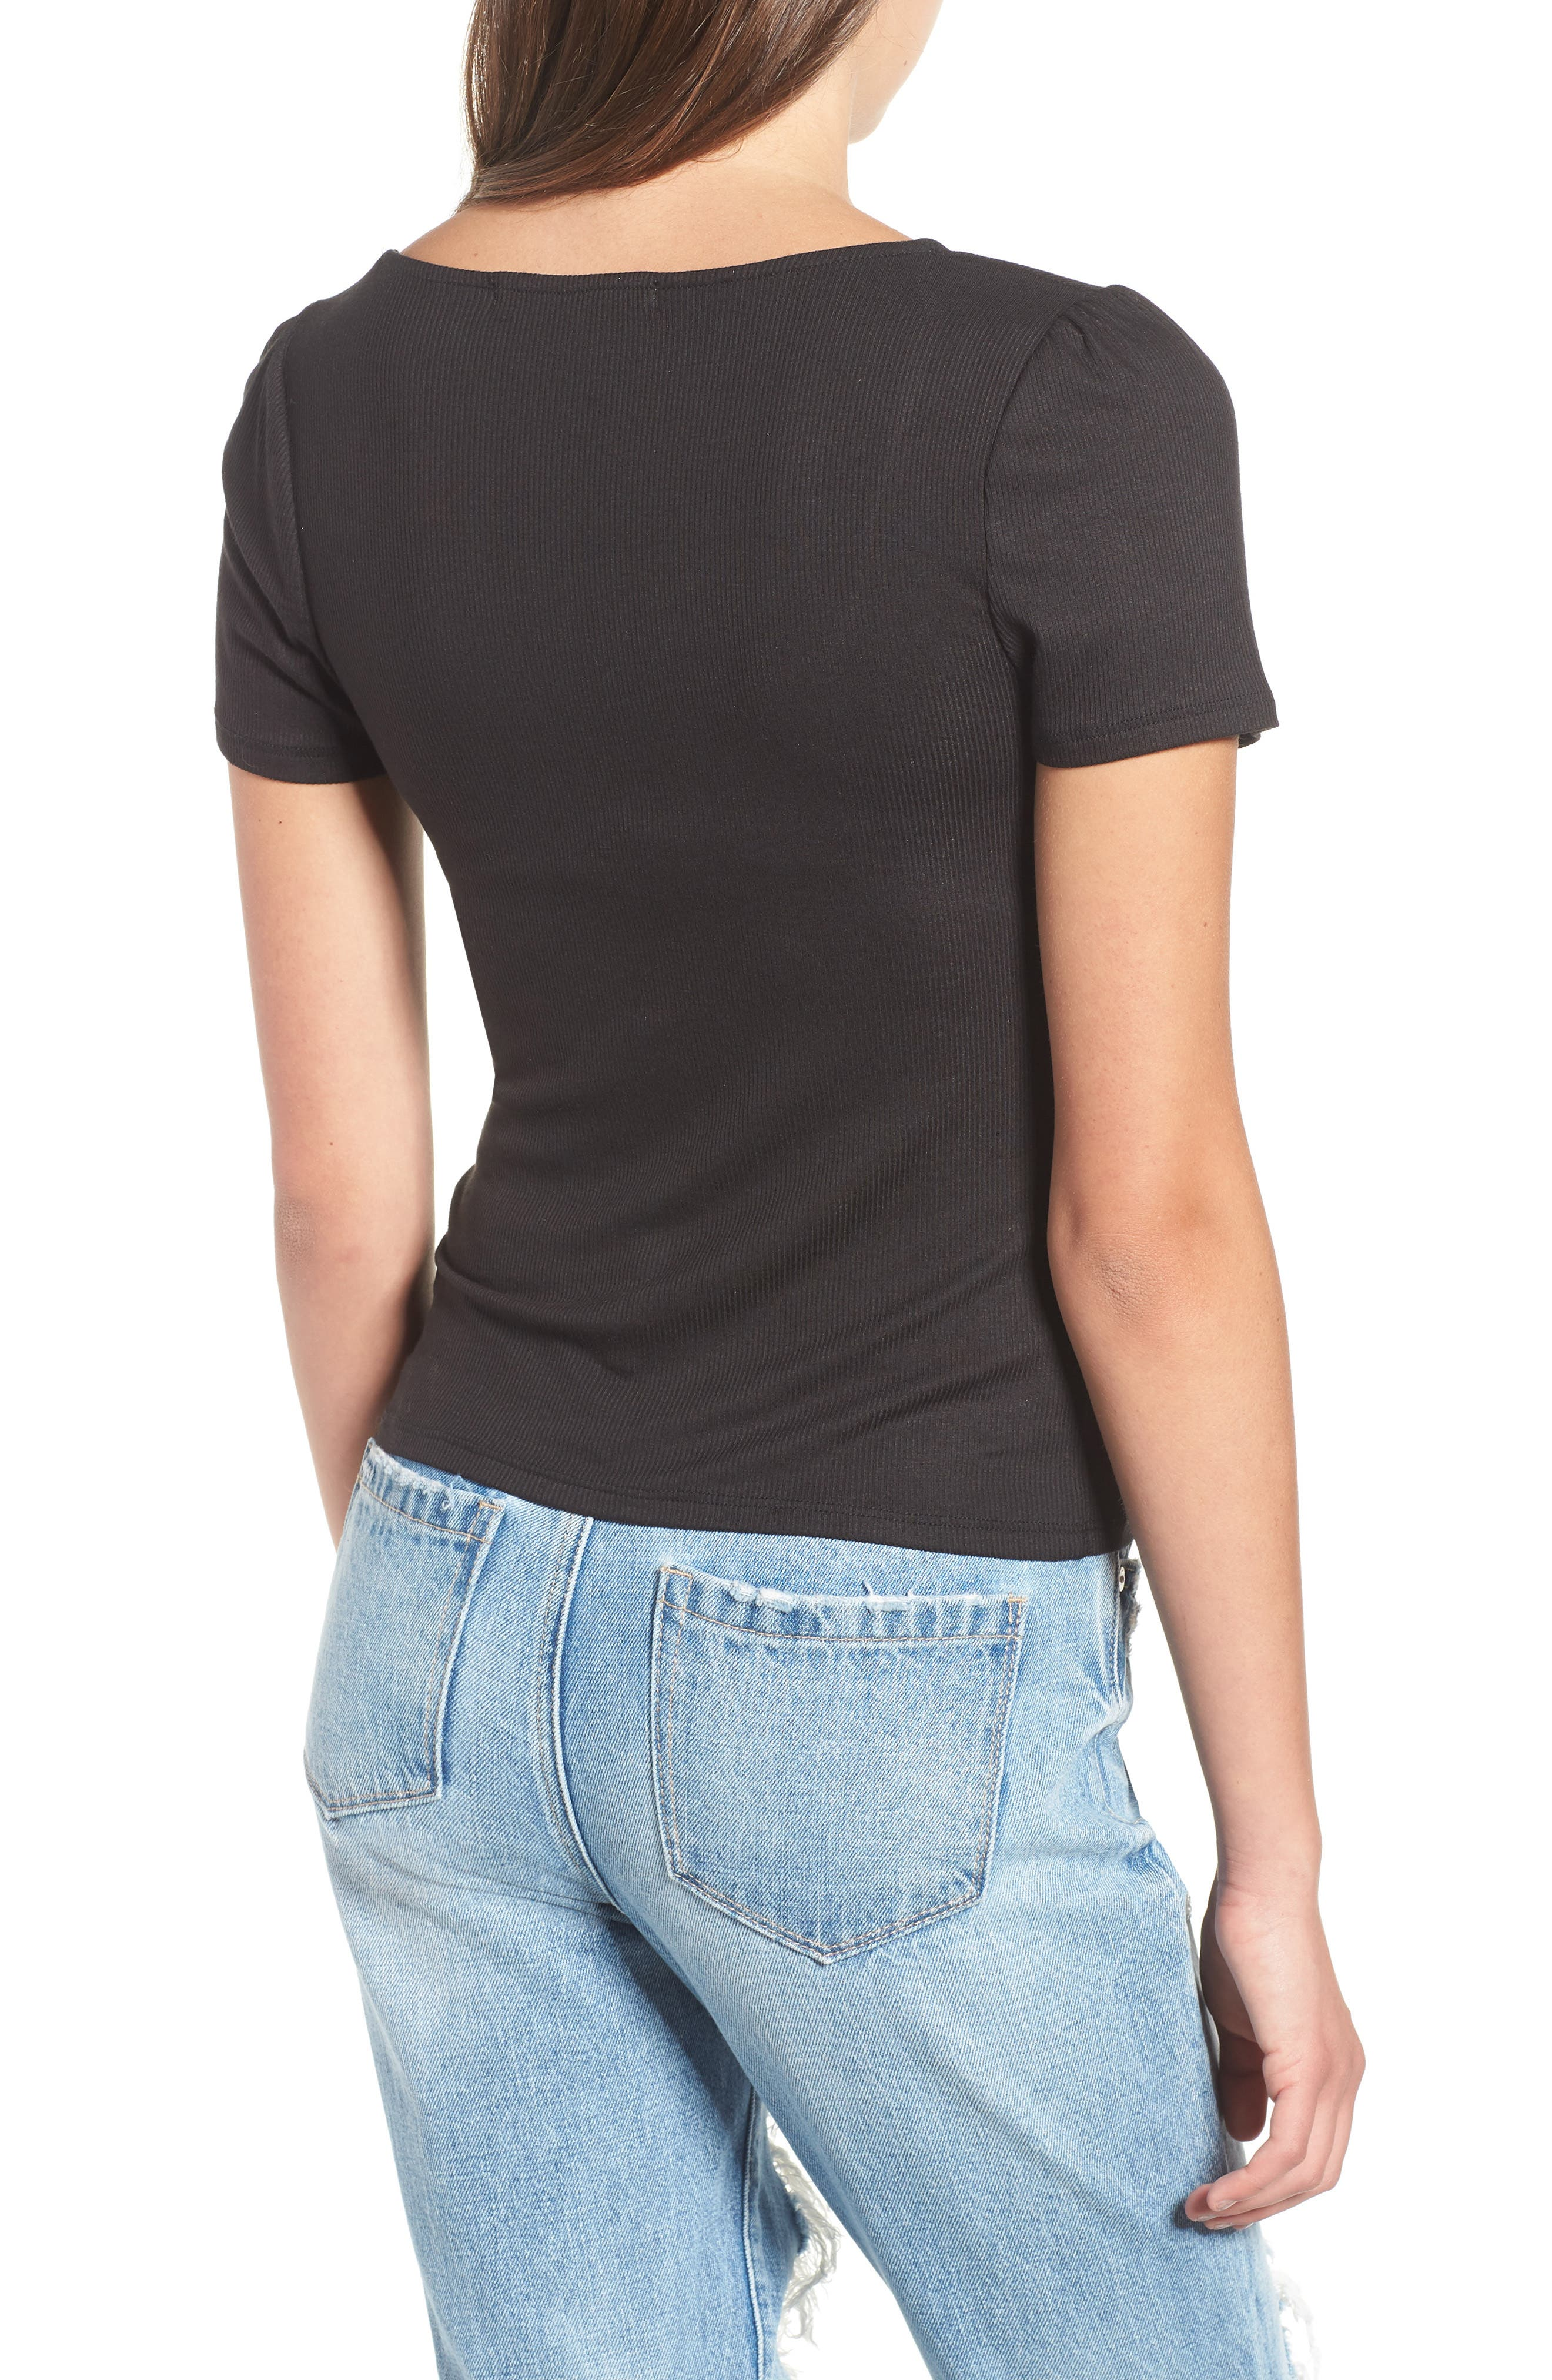 PROJECT SOCIAL T,                             PST by Project Social T Femme Ribbed Tee,                             Alternate thumbnail 2, color,                             001